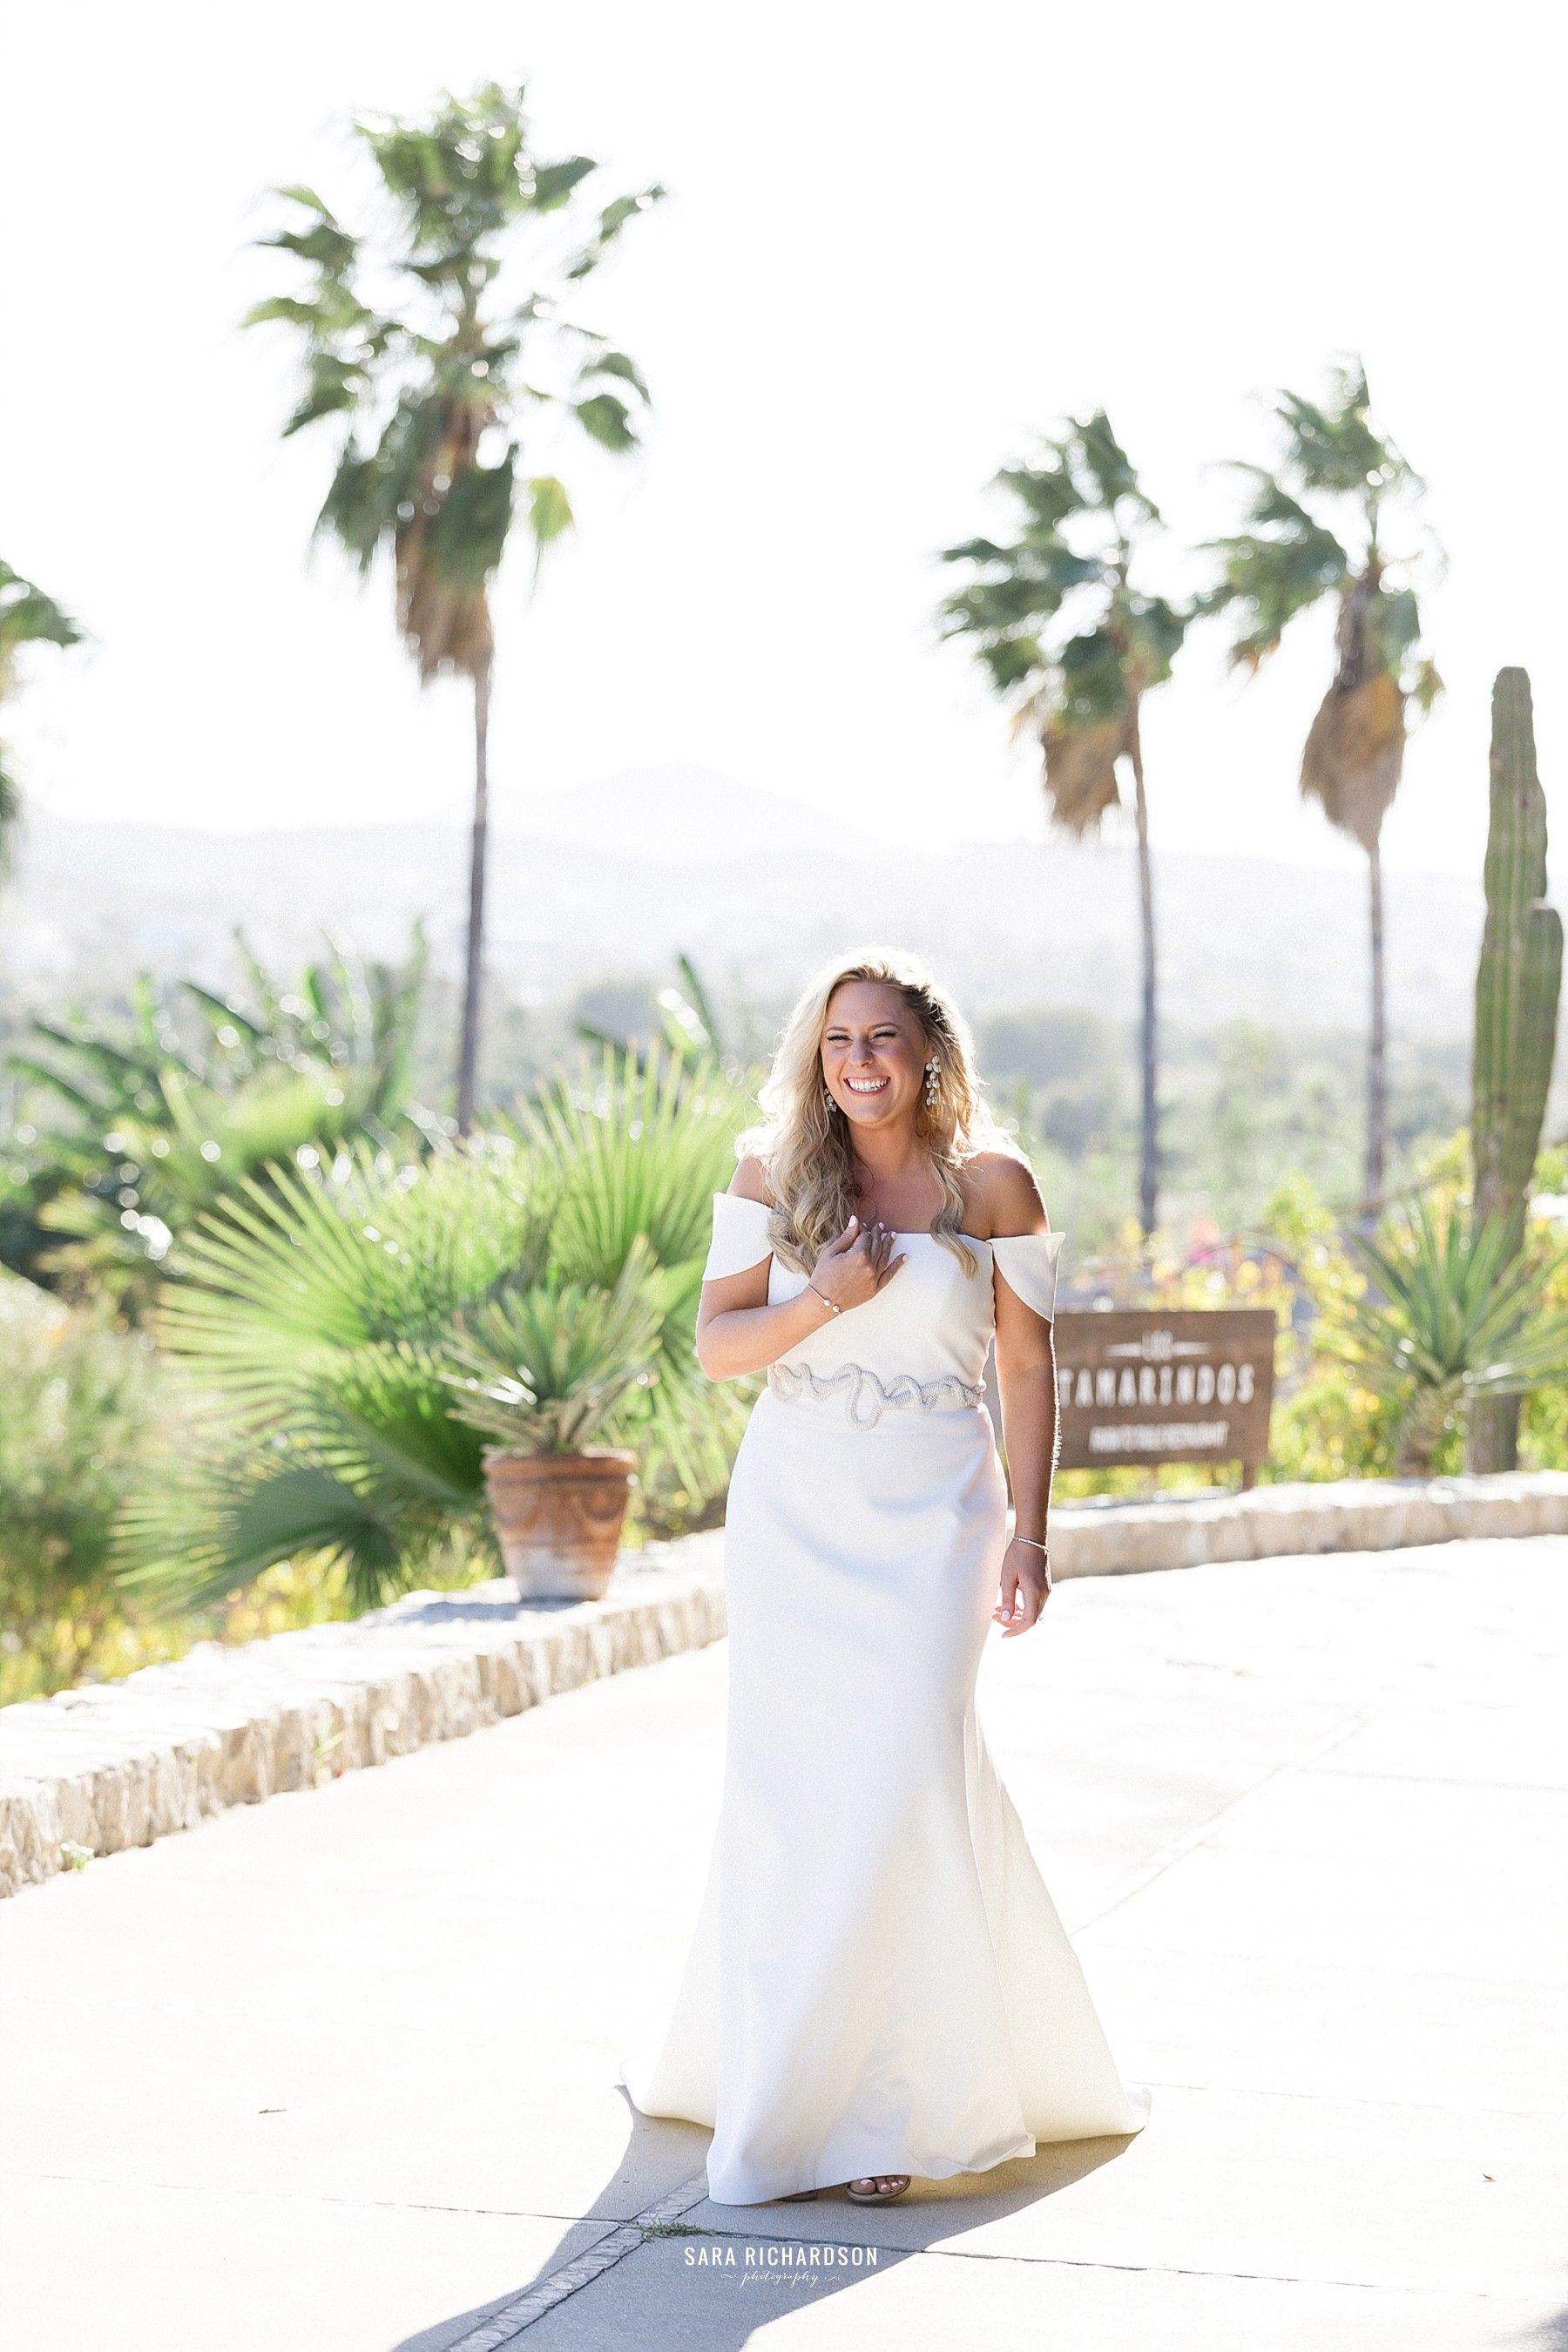 Bride very happy right after the ceremony. Beautiful scenery only in Los Cabos Mexico.